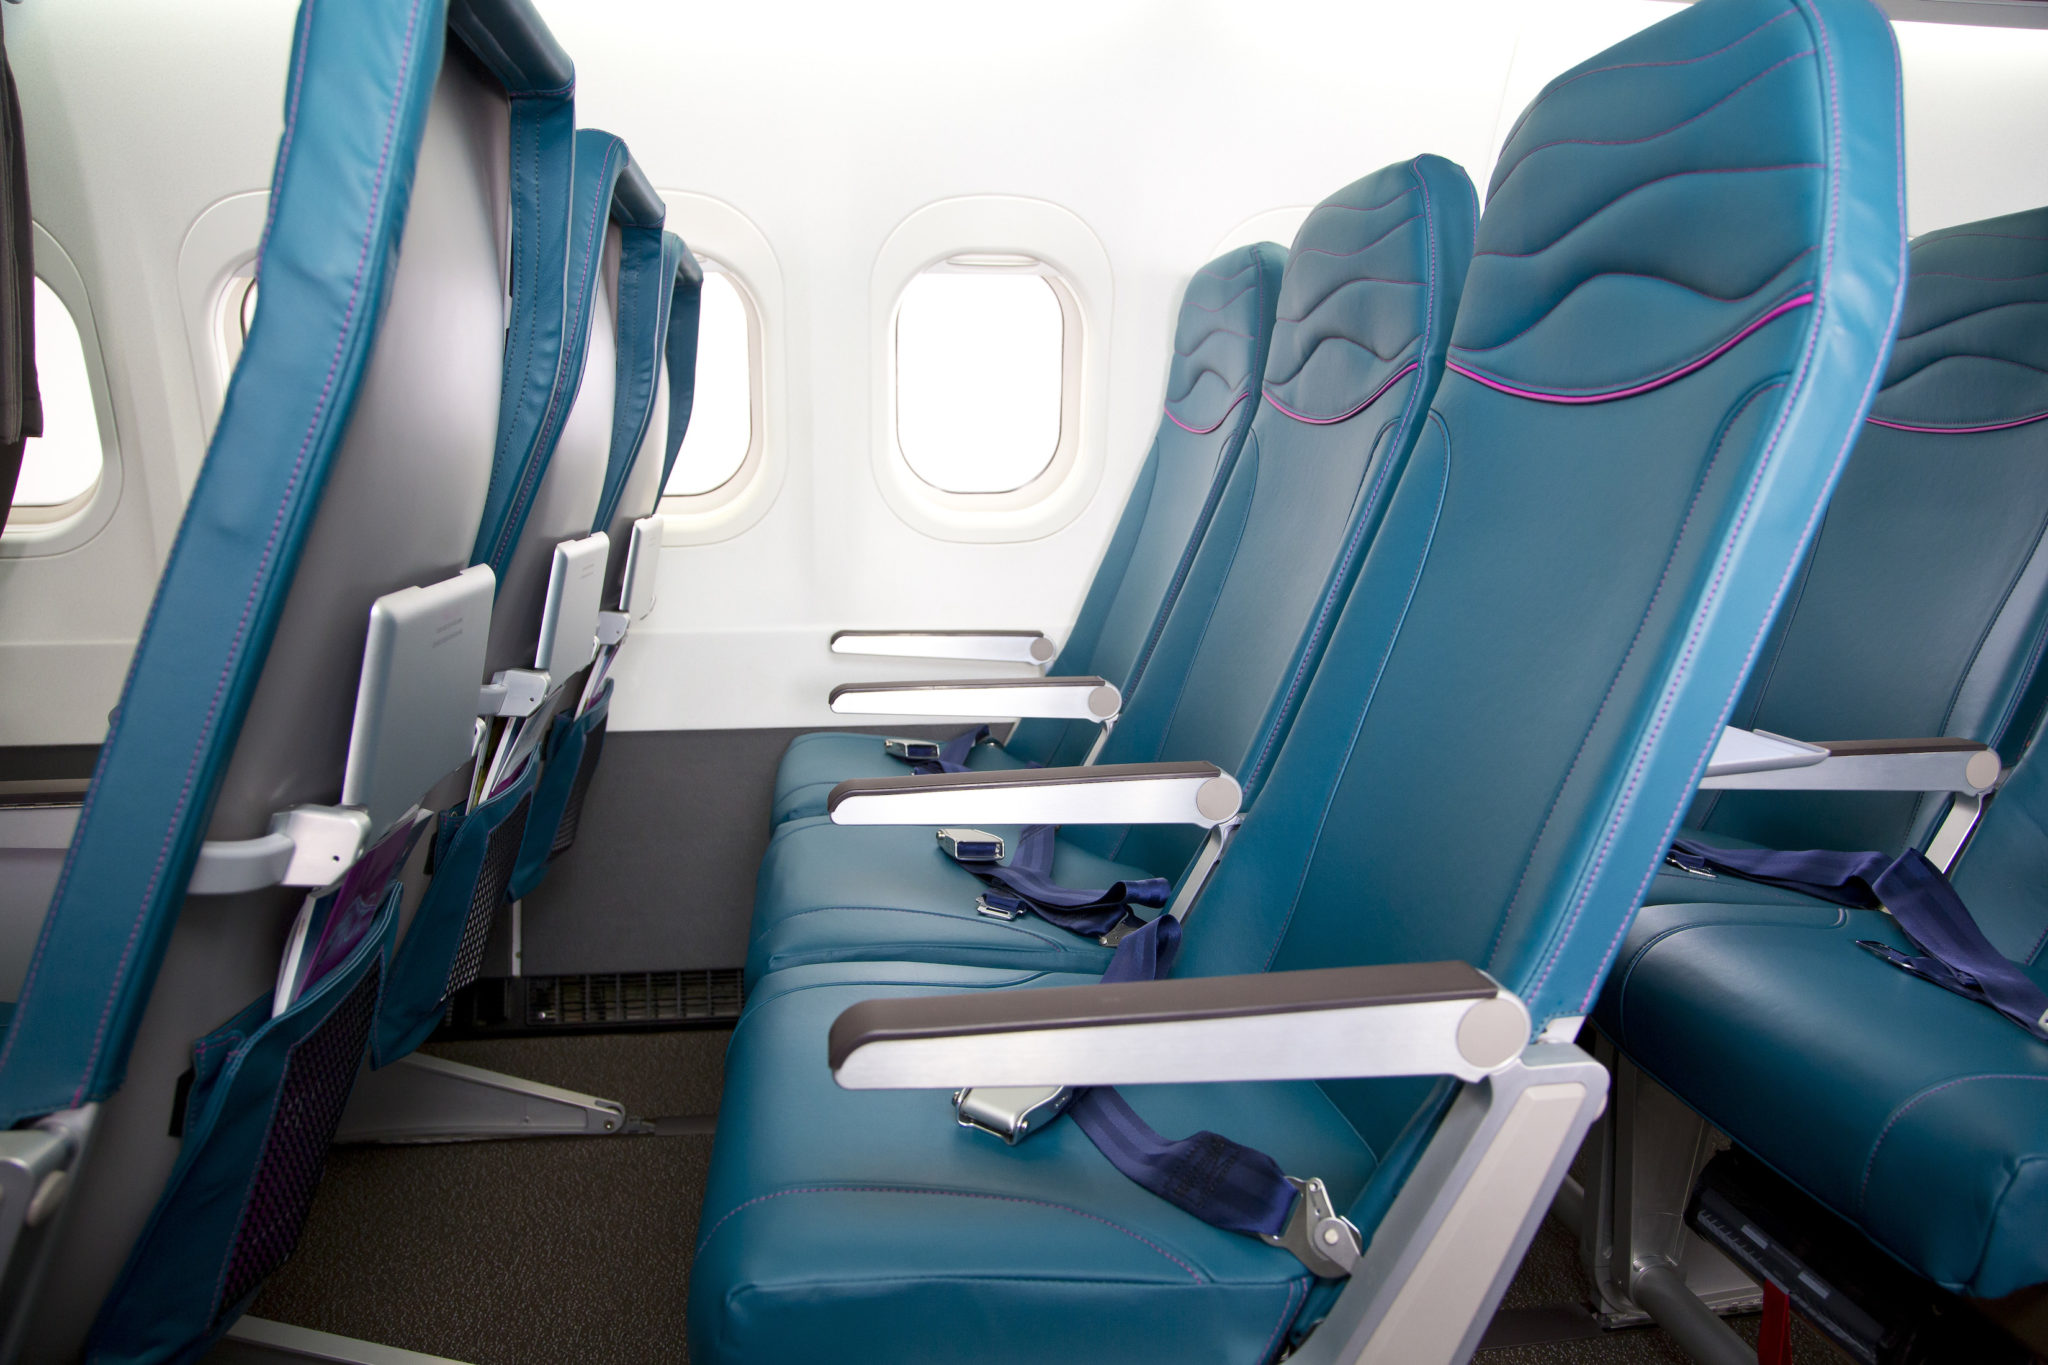 Why Hawaiian Airlines Use Of Slimline Seats Makes Sense